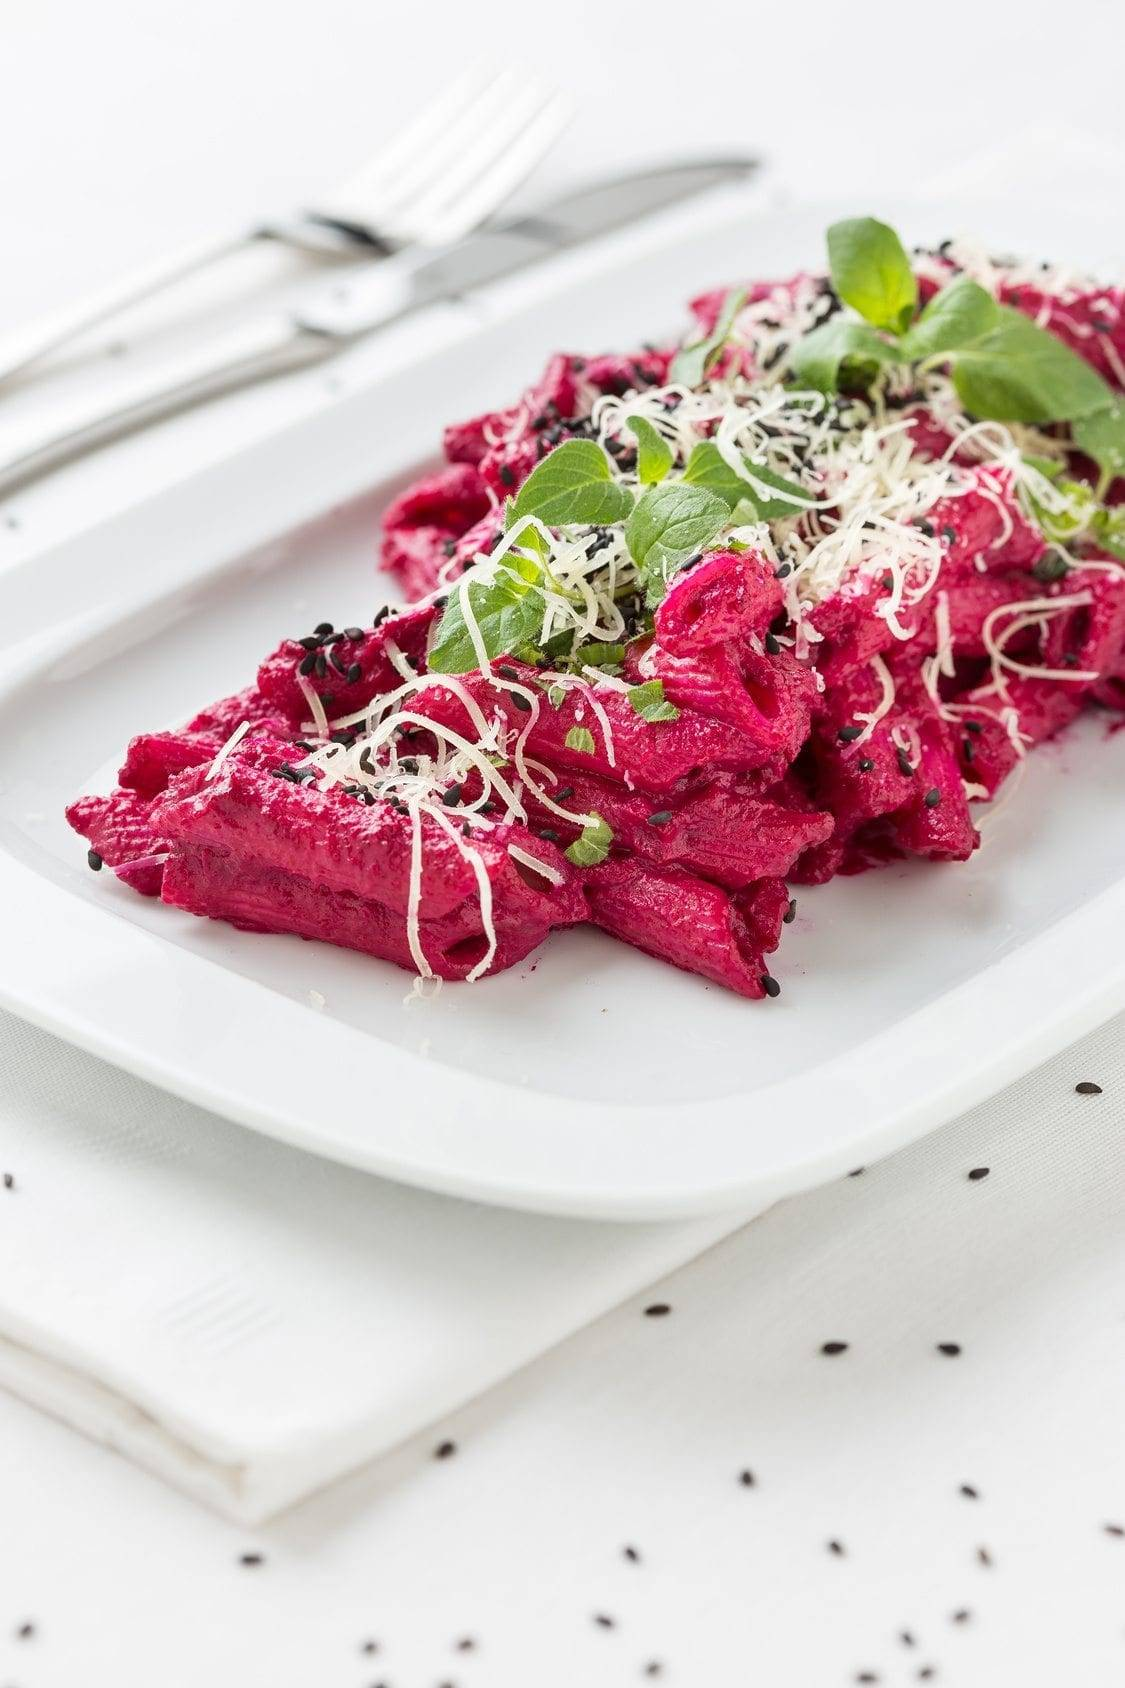 macaroni with red beet sauce on white plate